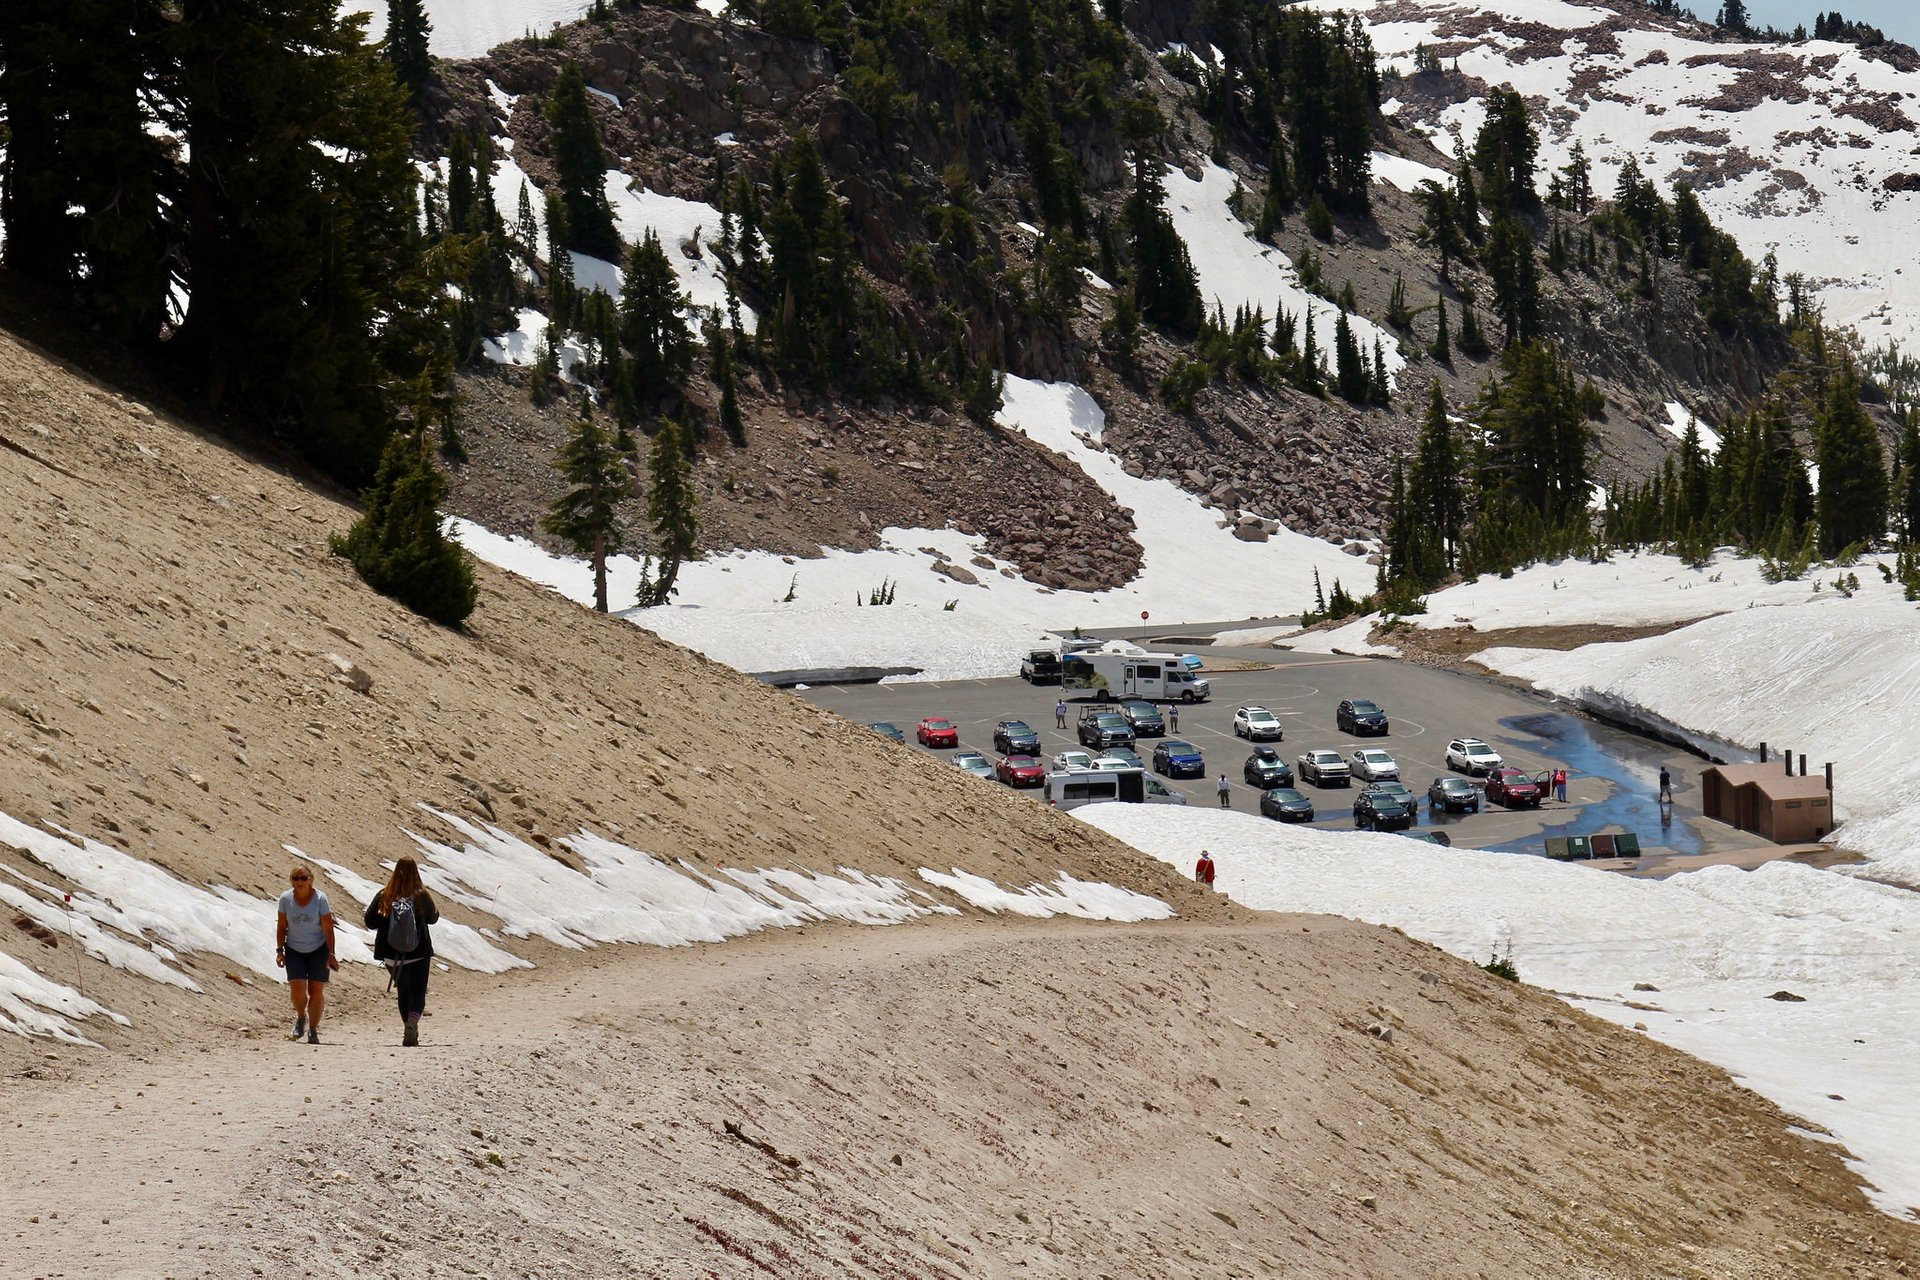 Lassen Peak Trail: Heading back to parking lot 2019